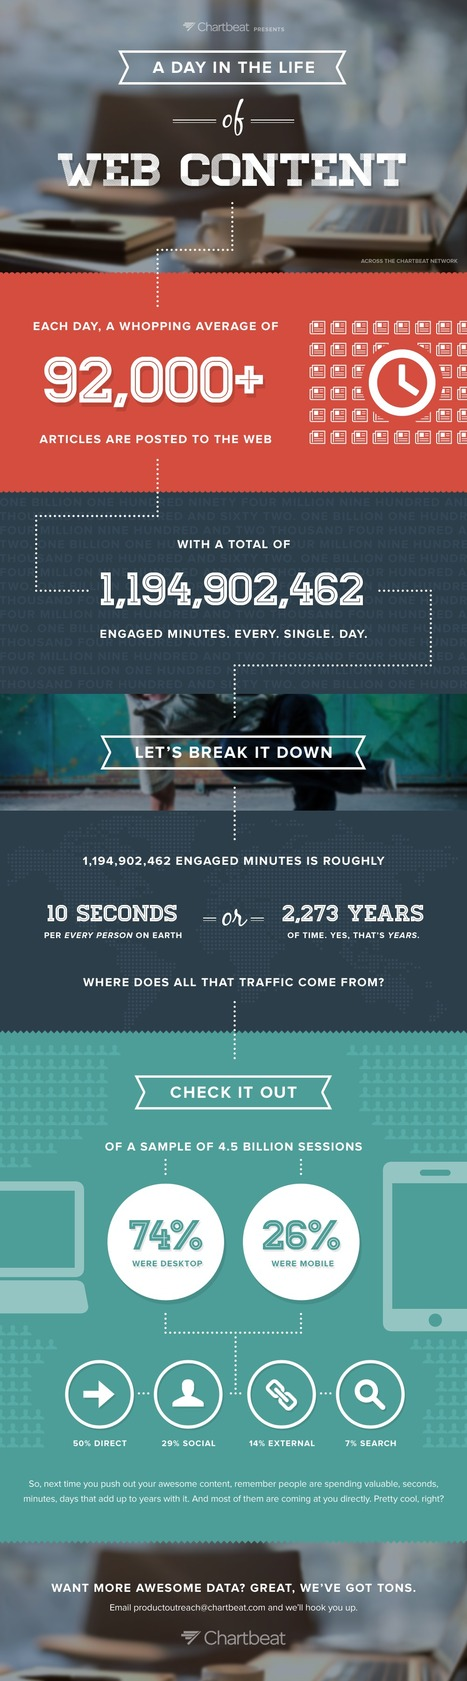 Infographic: A Day in the Life of Web Content | Internet Marketing | Scoop.it